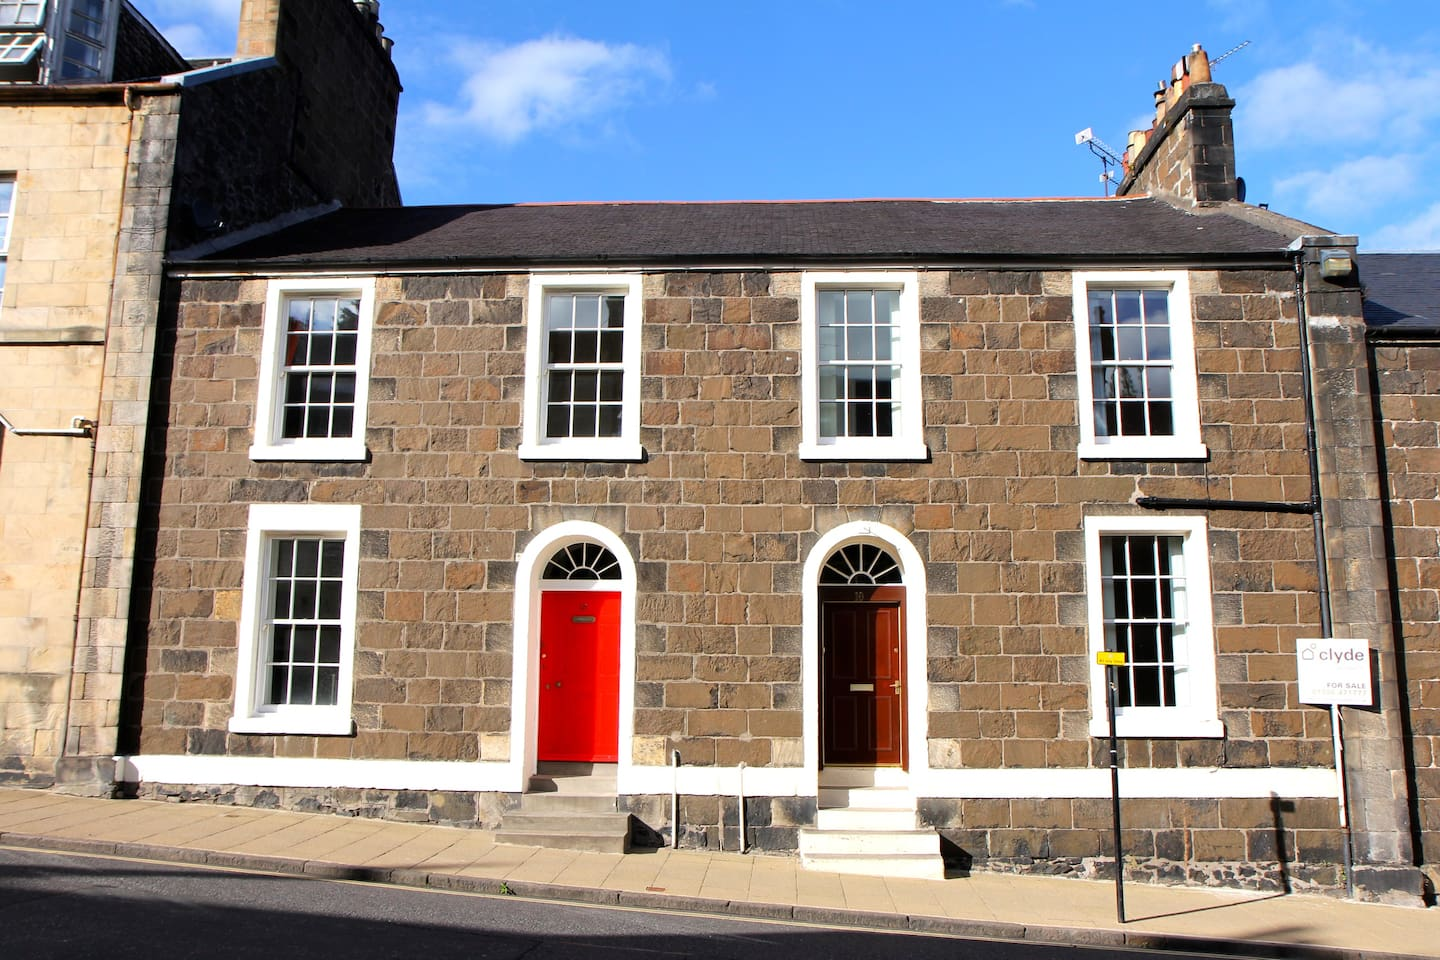 Our Stirling townhouse is really old, built 1824. It's the one on the left, red door.